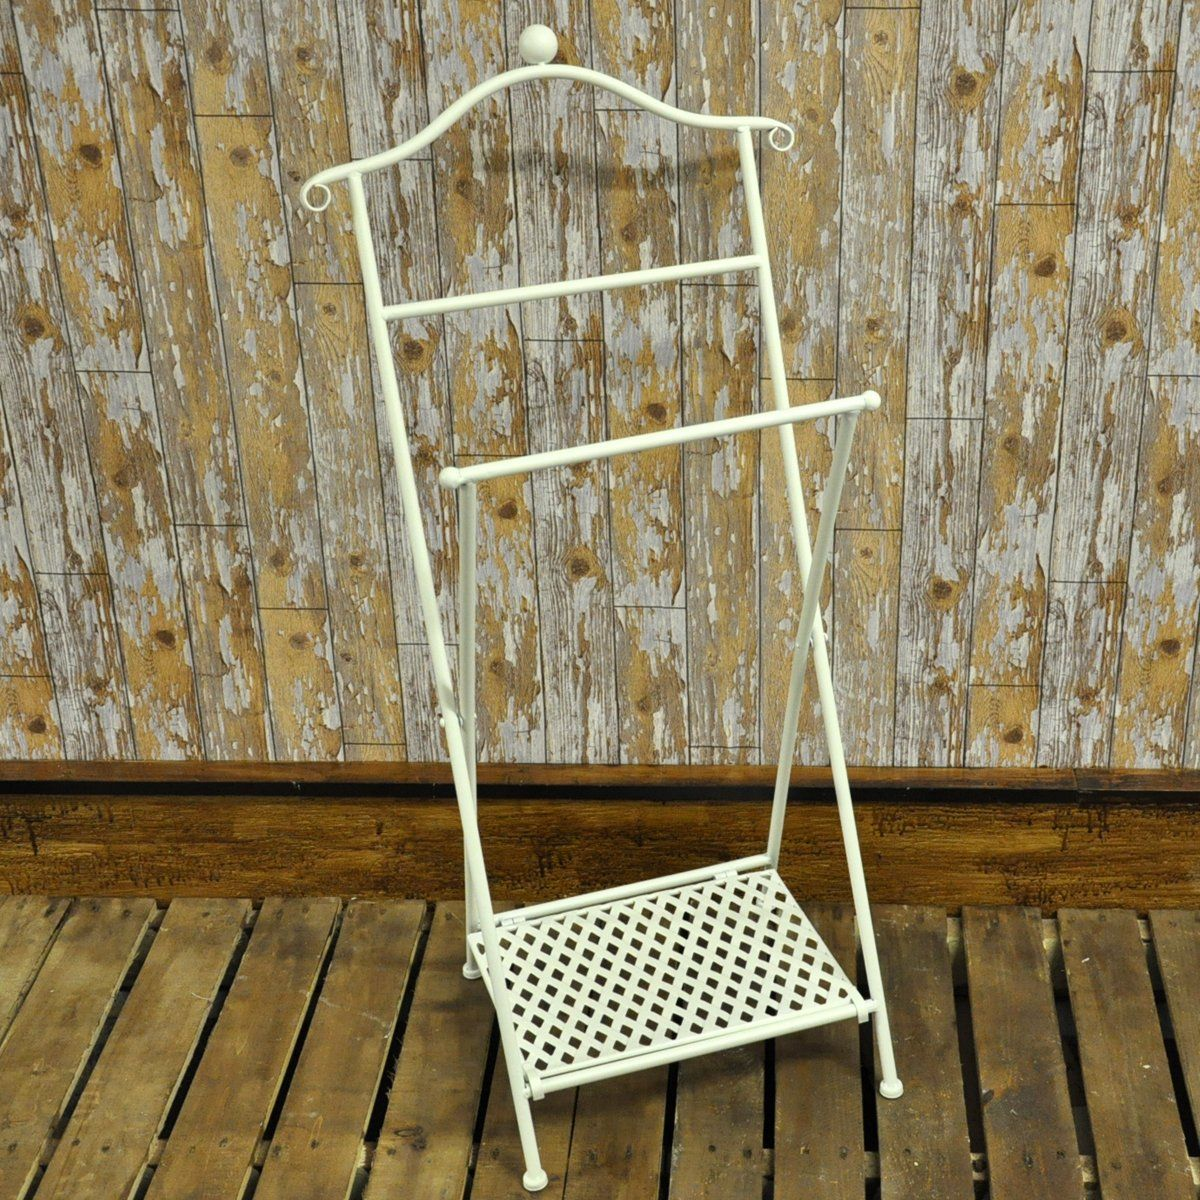 vintage style clothes rail uk, shabby chic french vintage style bathroom cream metal foldable towel, Design ideen